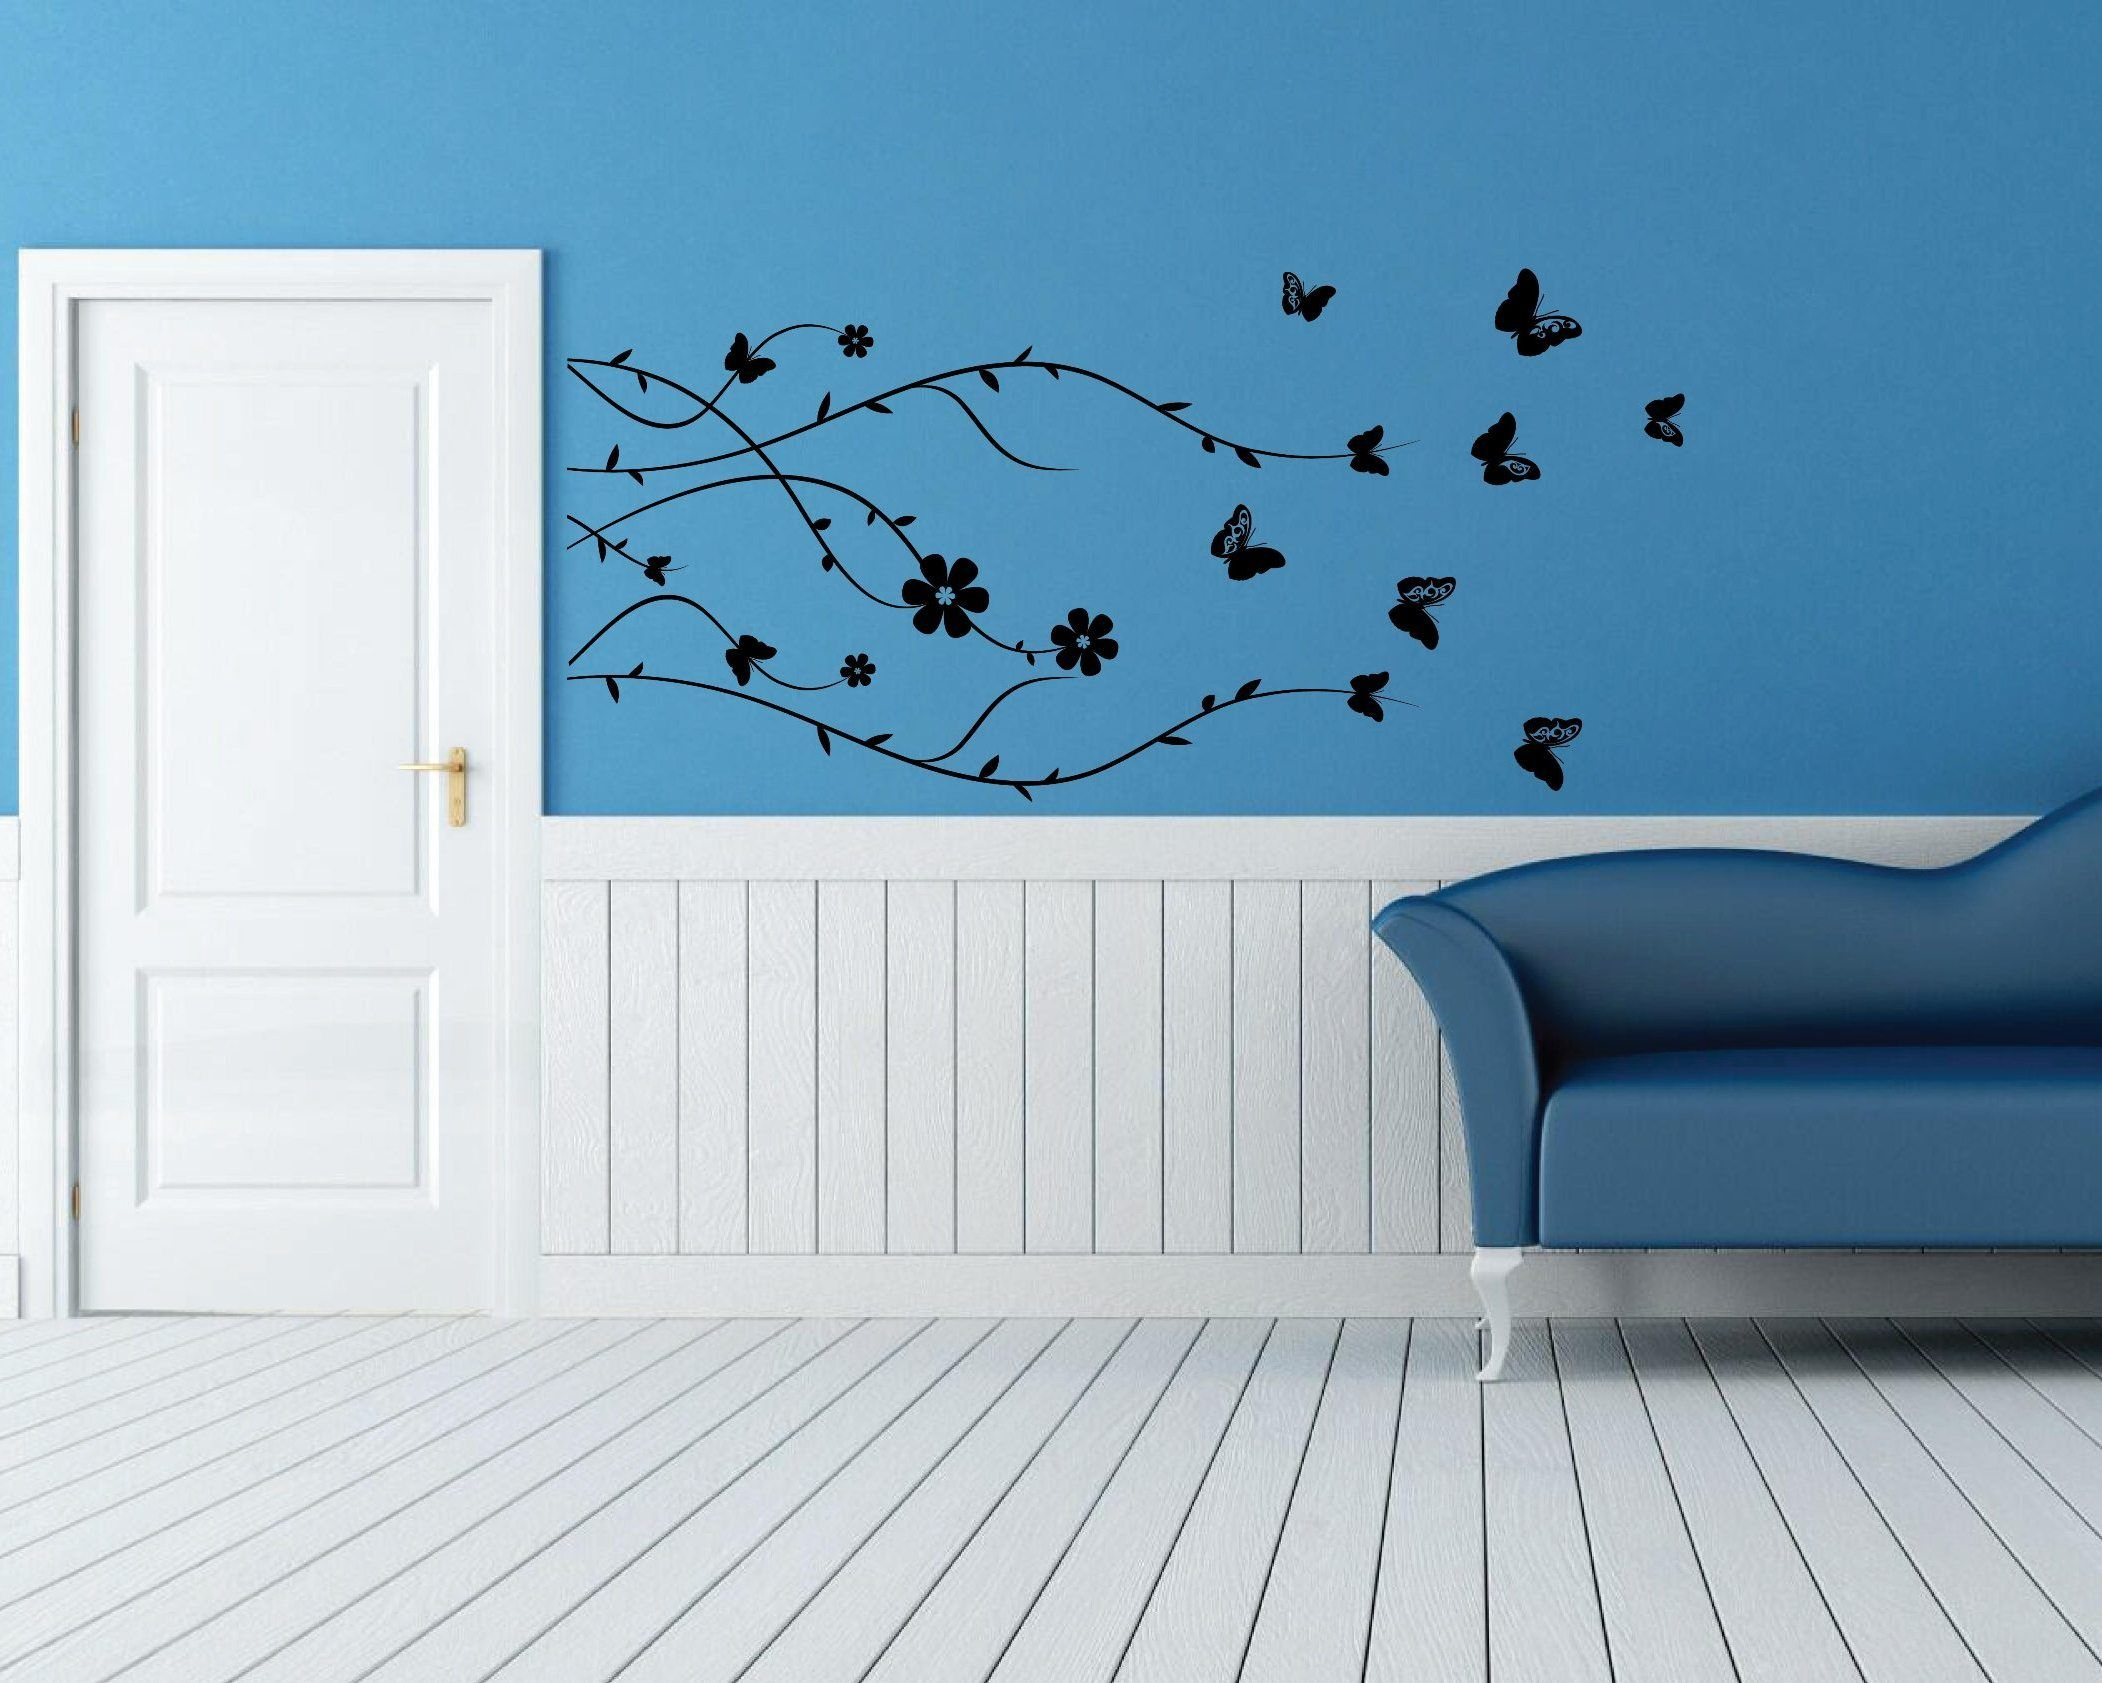 Black butterfly wall decals on a blue wall wall decal australia black butterfly wall decals on a blue wall amipublicfo Image collections